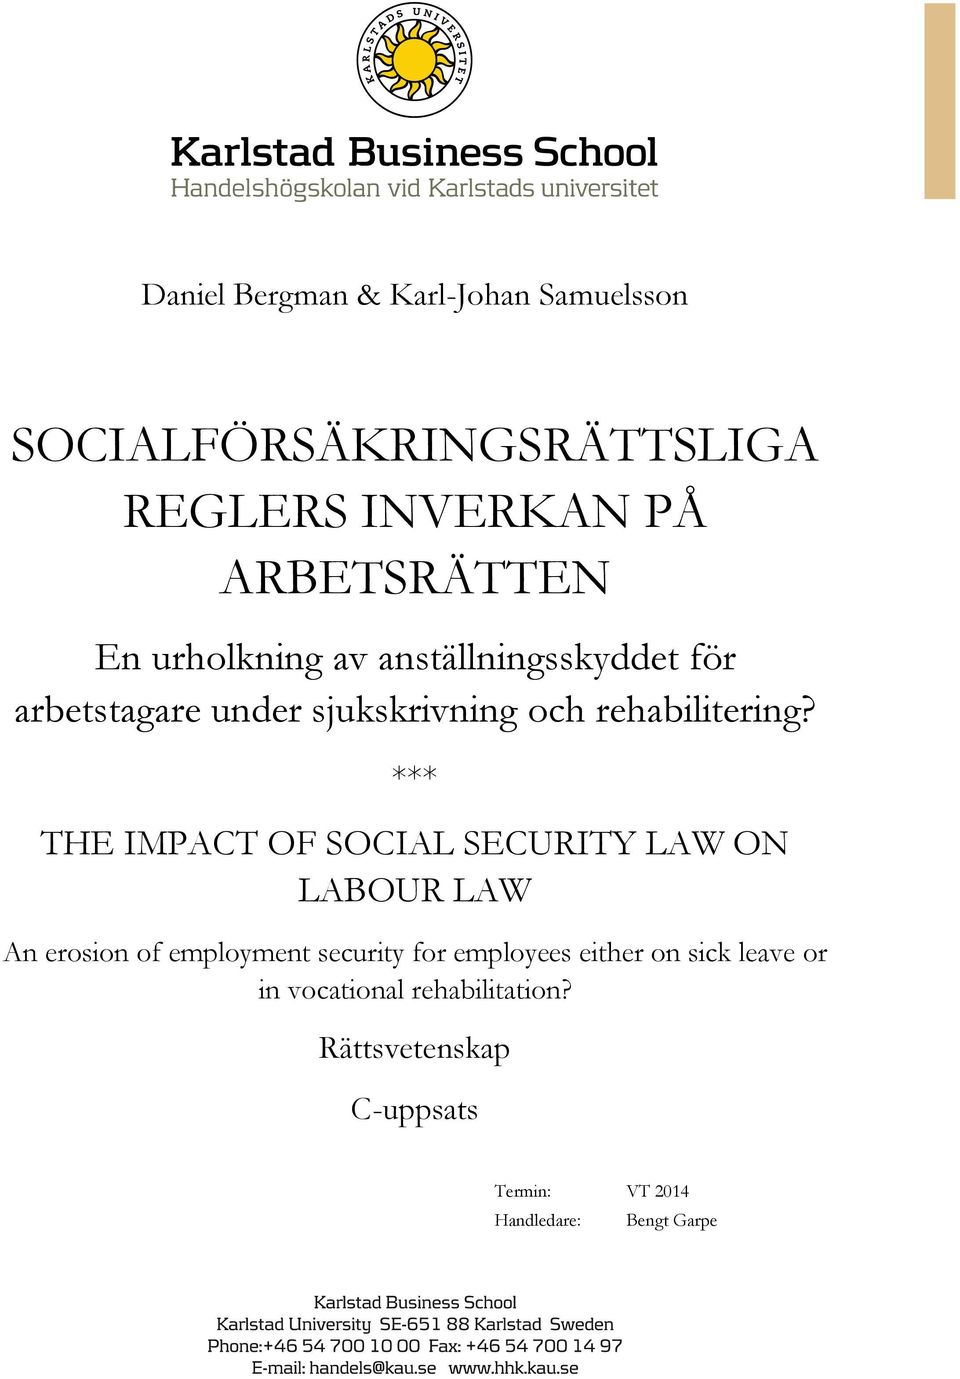 *** THE IMPACT OF SOCIAL SECURITY LAW ON LABOUR LAW An erosion of employment security for employees